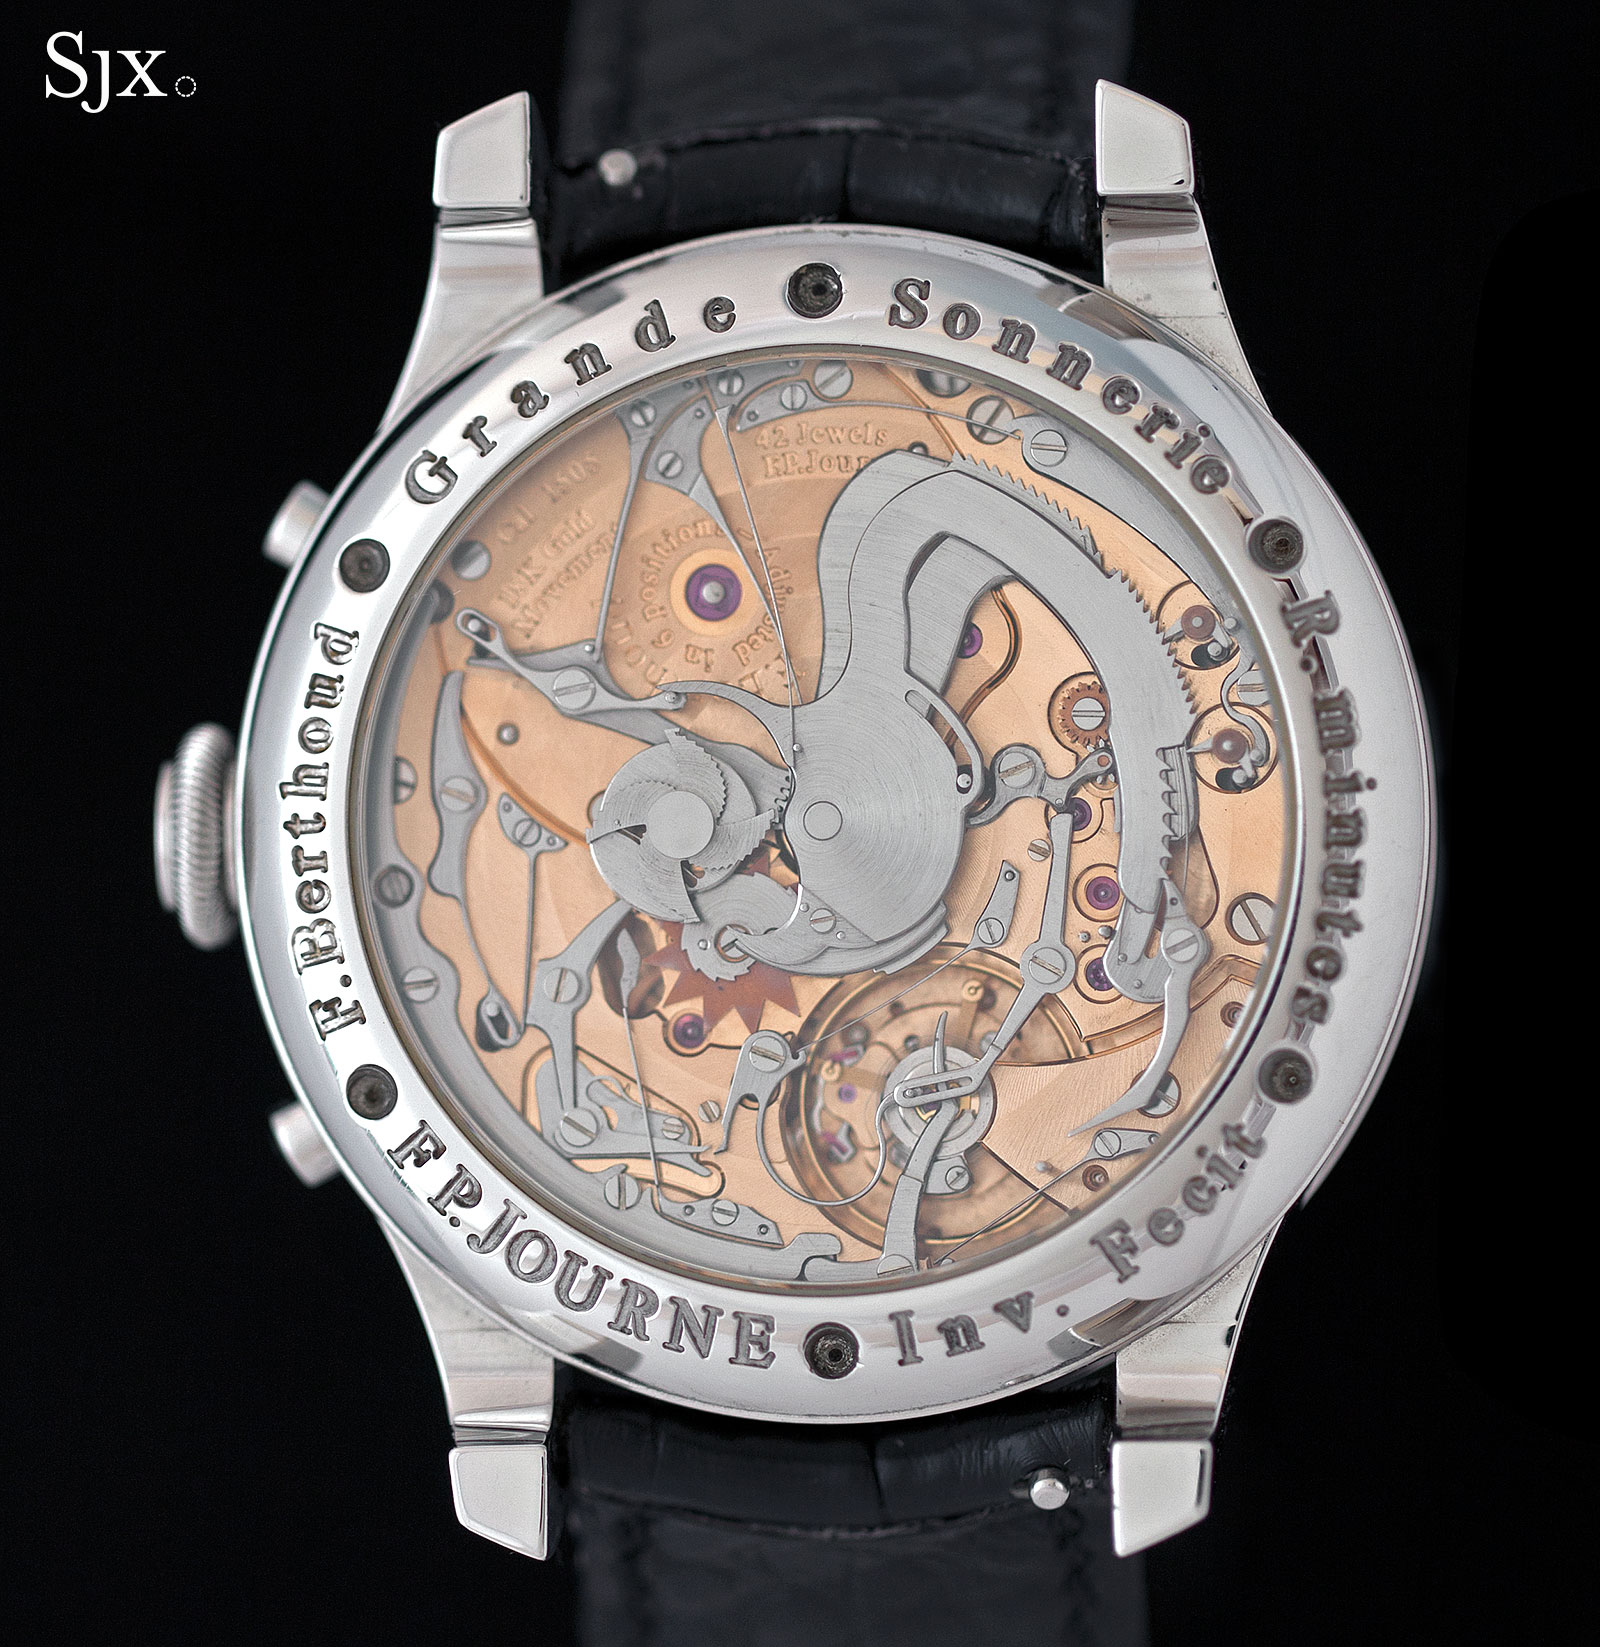 FP Journe Grande Sonnerie movement